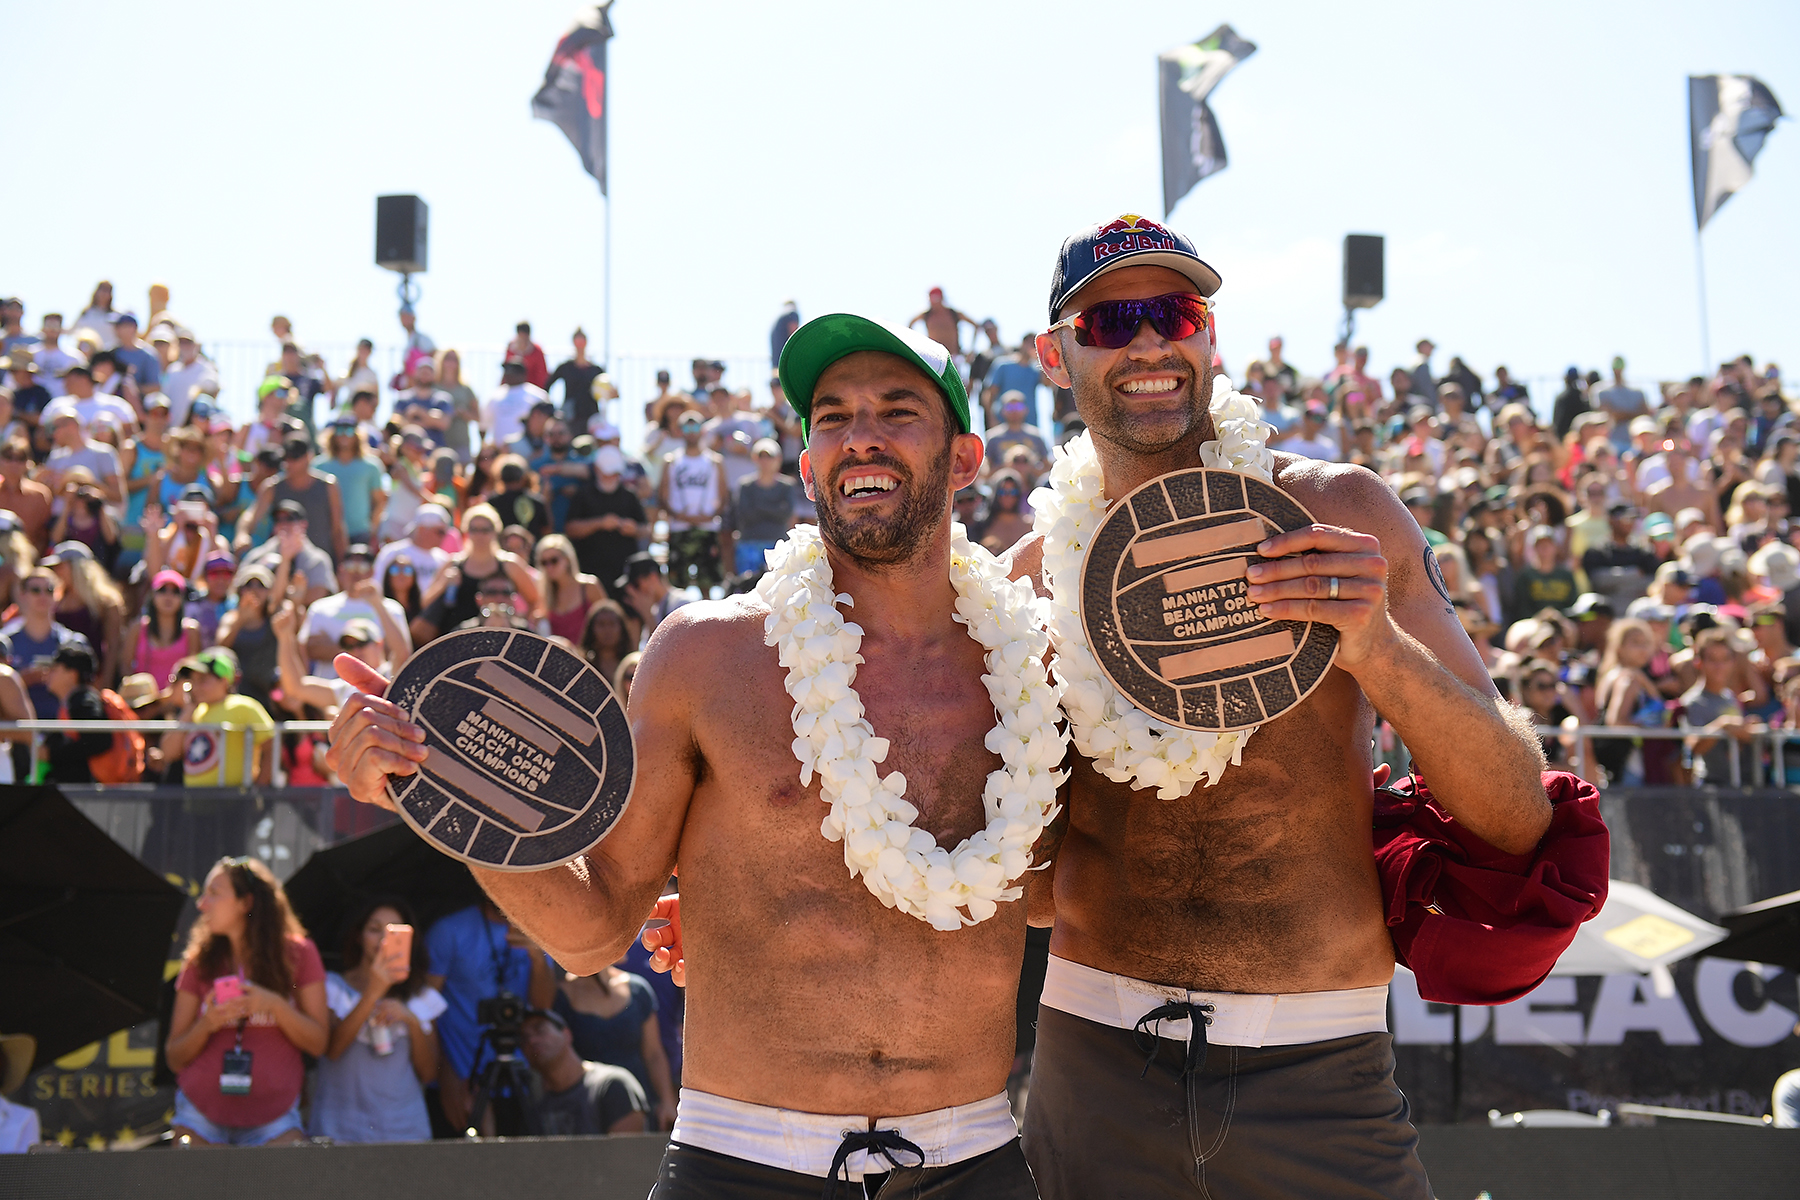 Phil Dalhausser and Nick Lucena hold their winners' plaques at the 2017 AVP Gold Series Manhattan Beach Open Presented by Acer (Photo: Robert Beck)